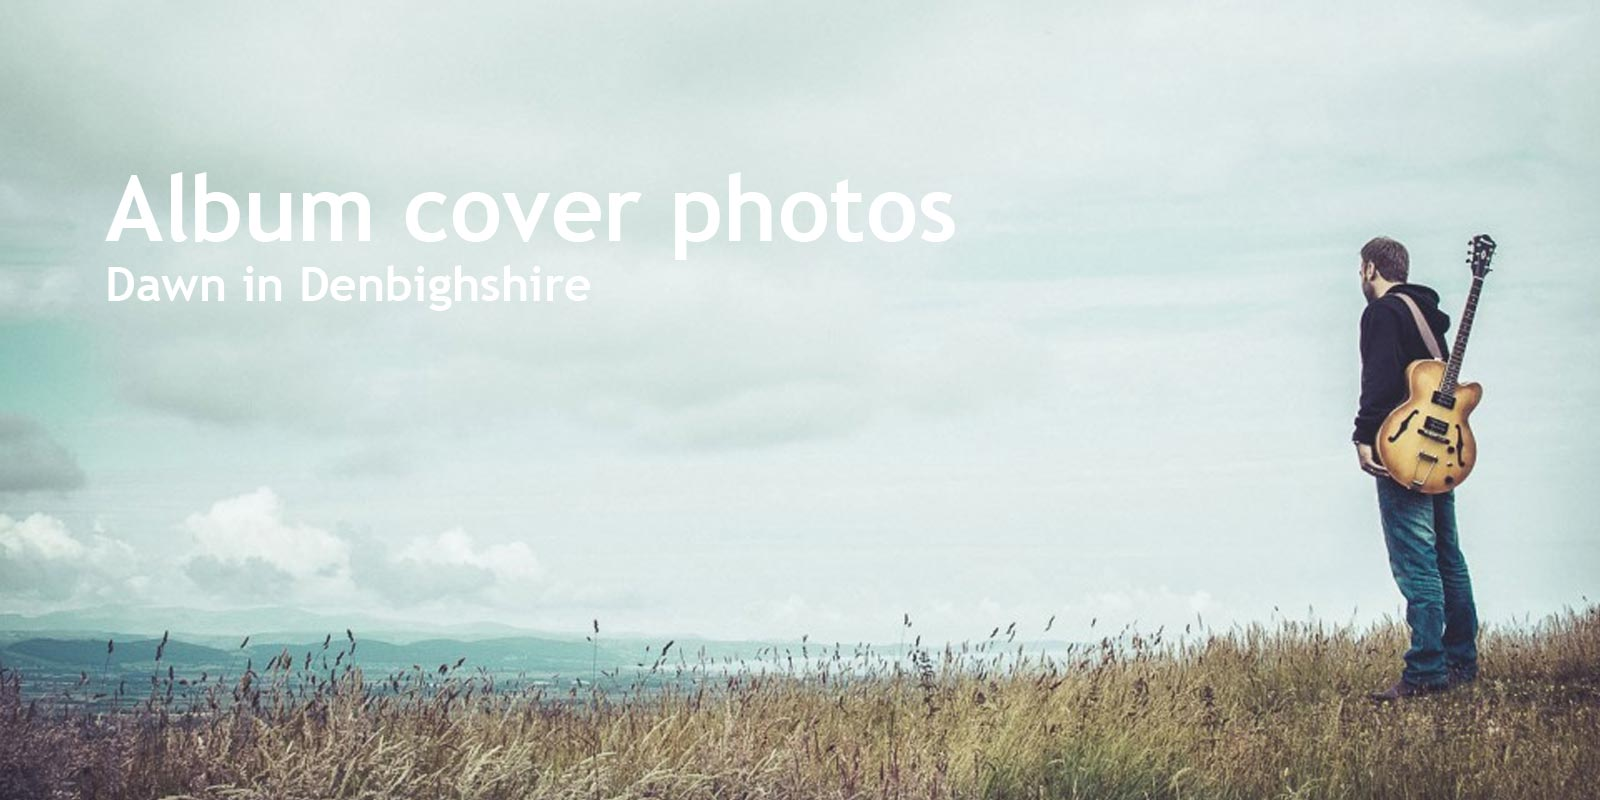 Album cover photos in Denbighshire